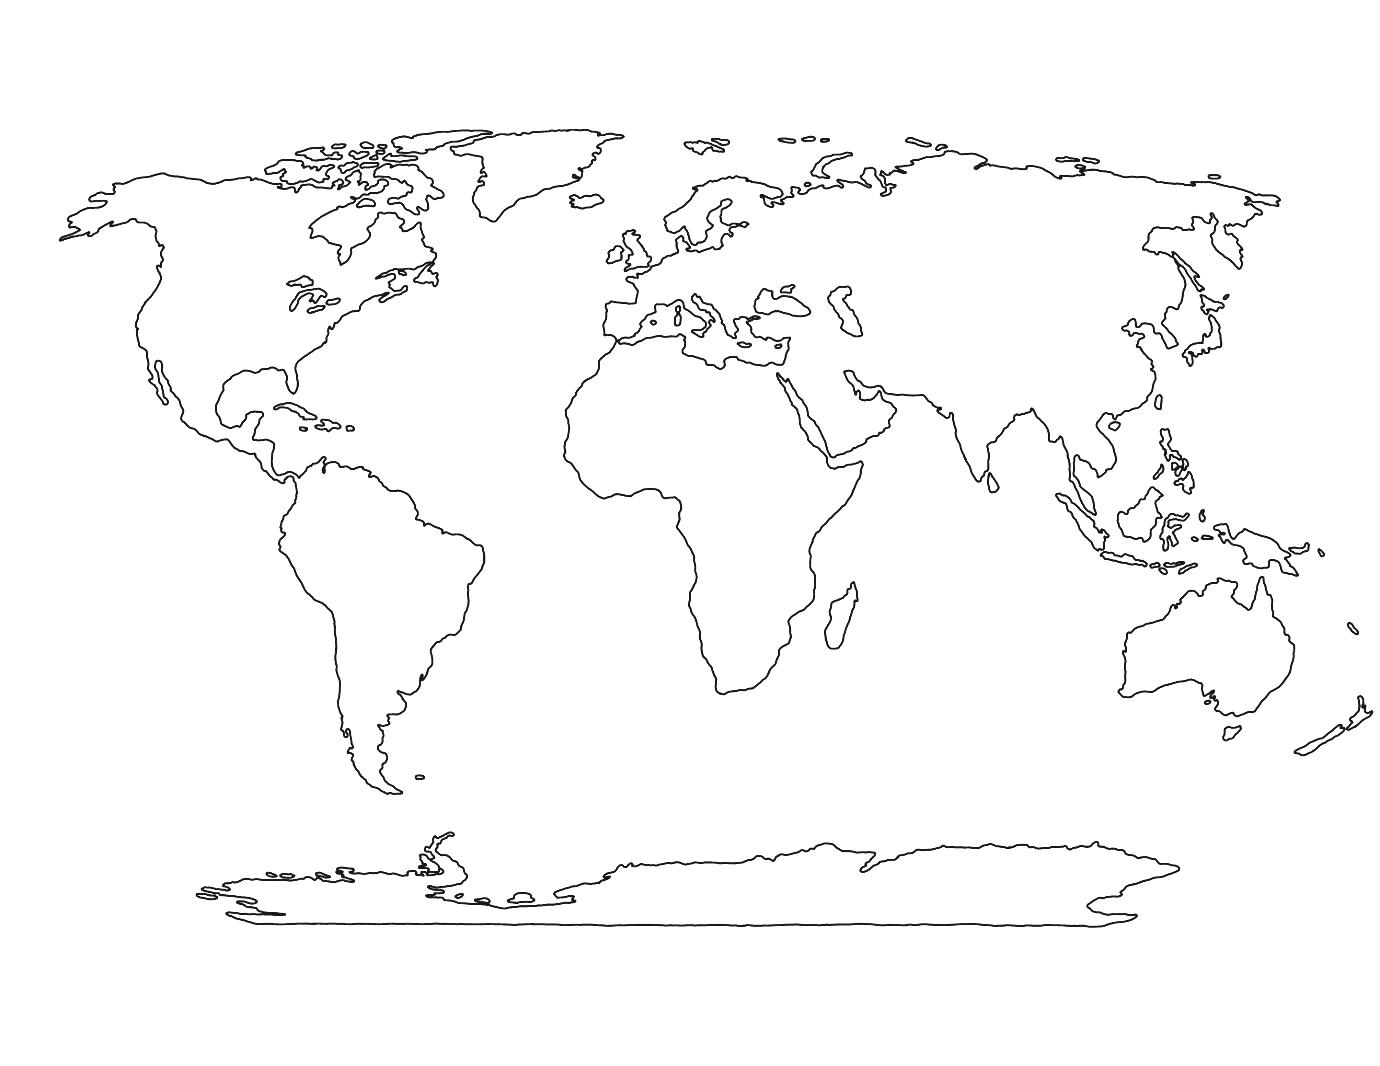 Blank World Maps With Countries Map Europe Cold War.